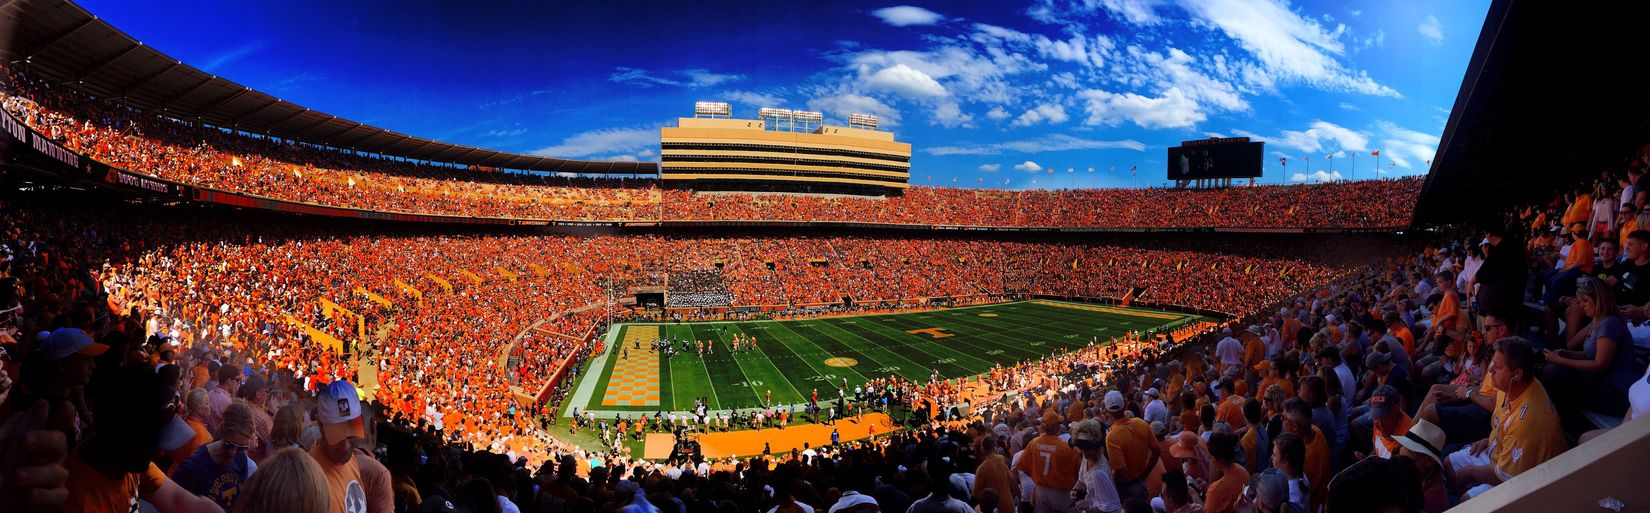 Vols Crowd Large Group Of People Football Football Stadium